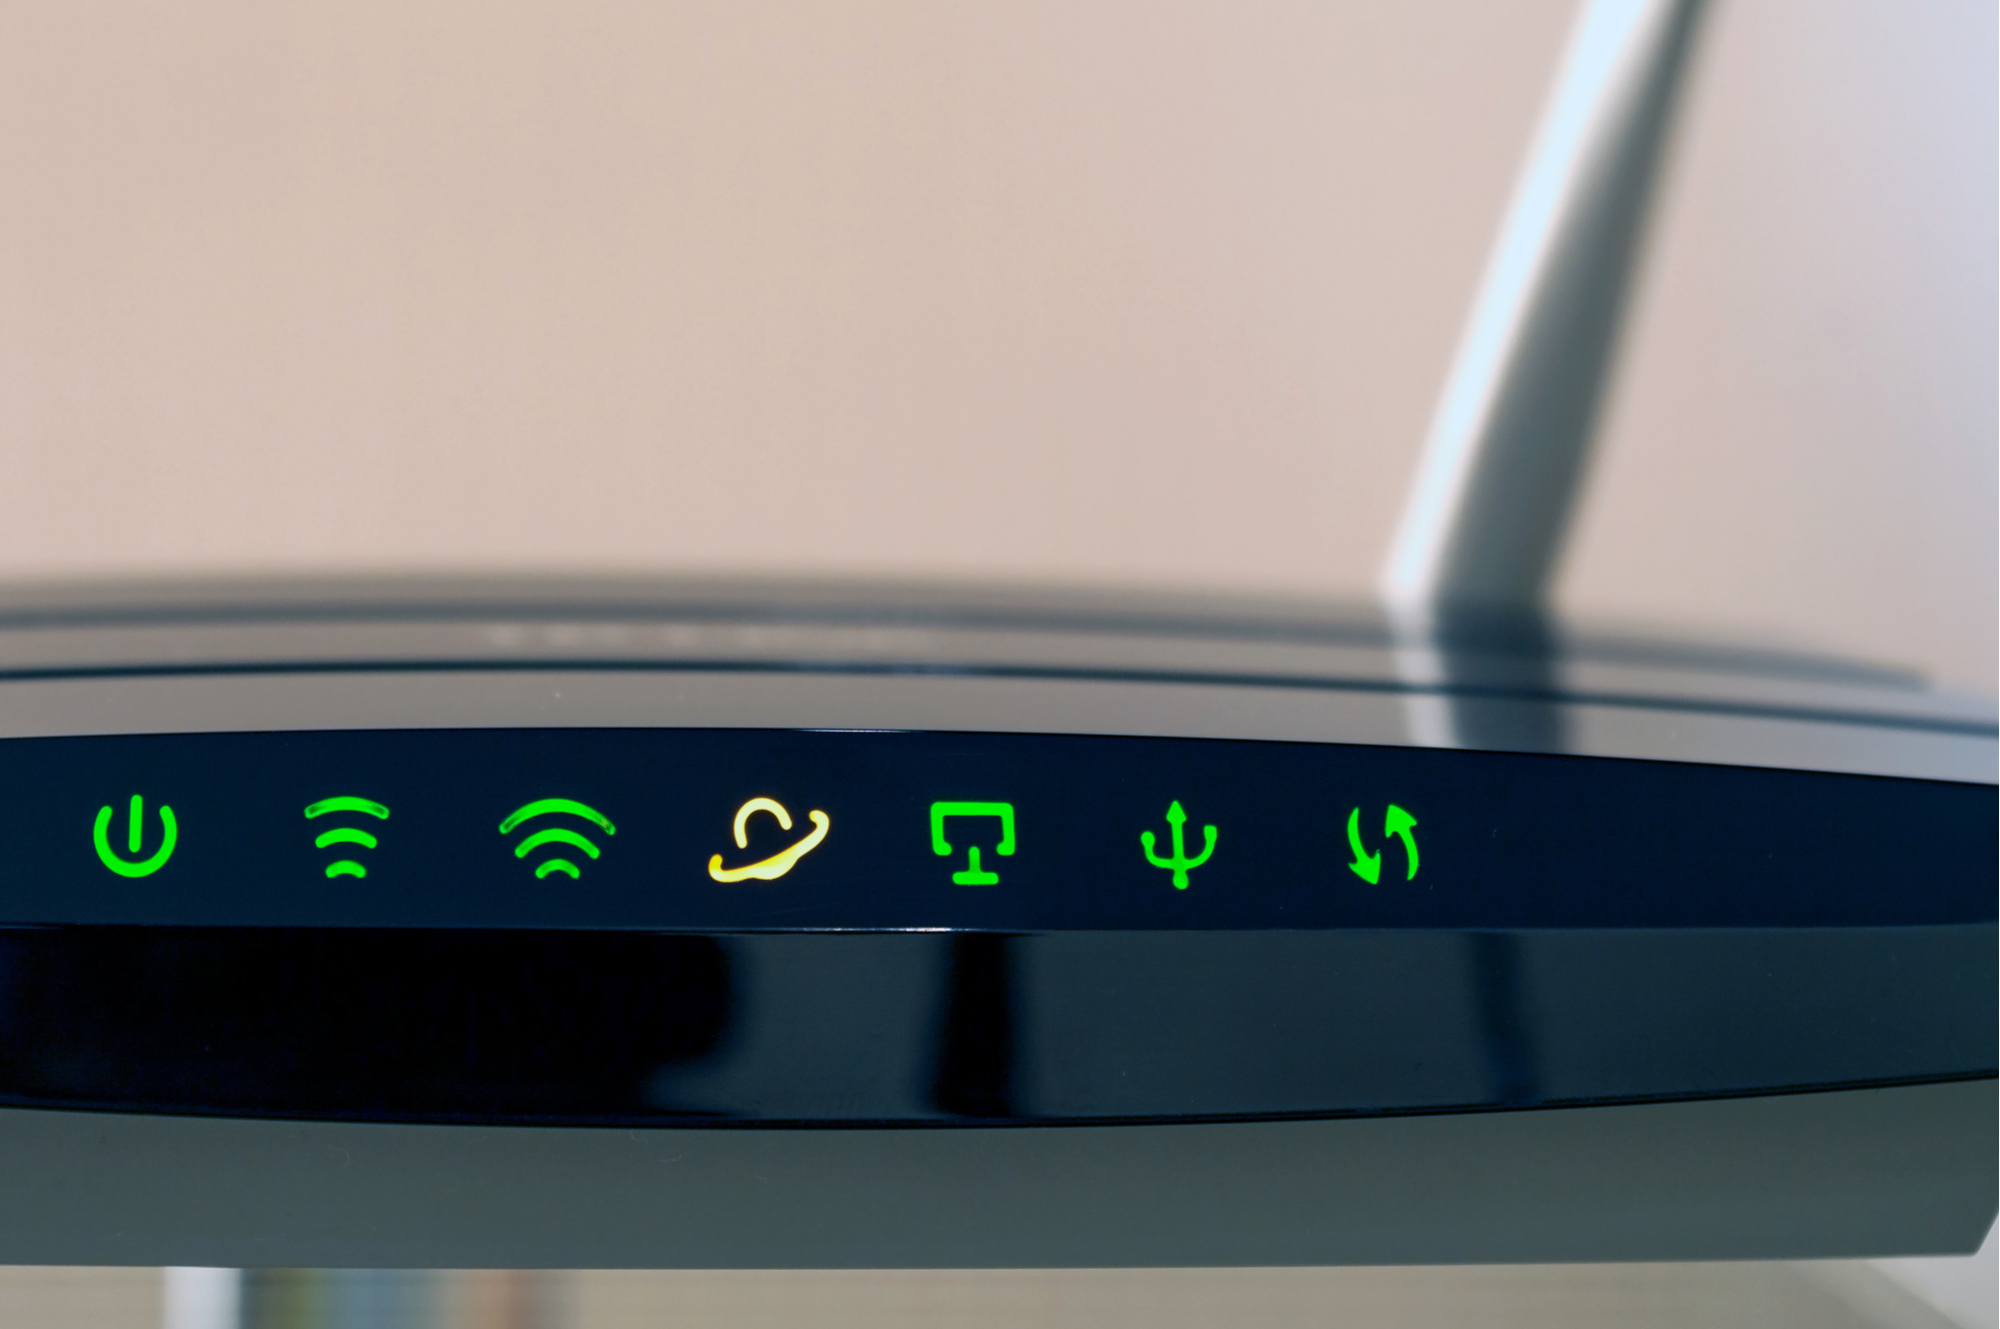 How to Protect Your Home Router from Attacks - VICE